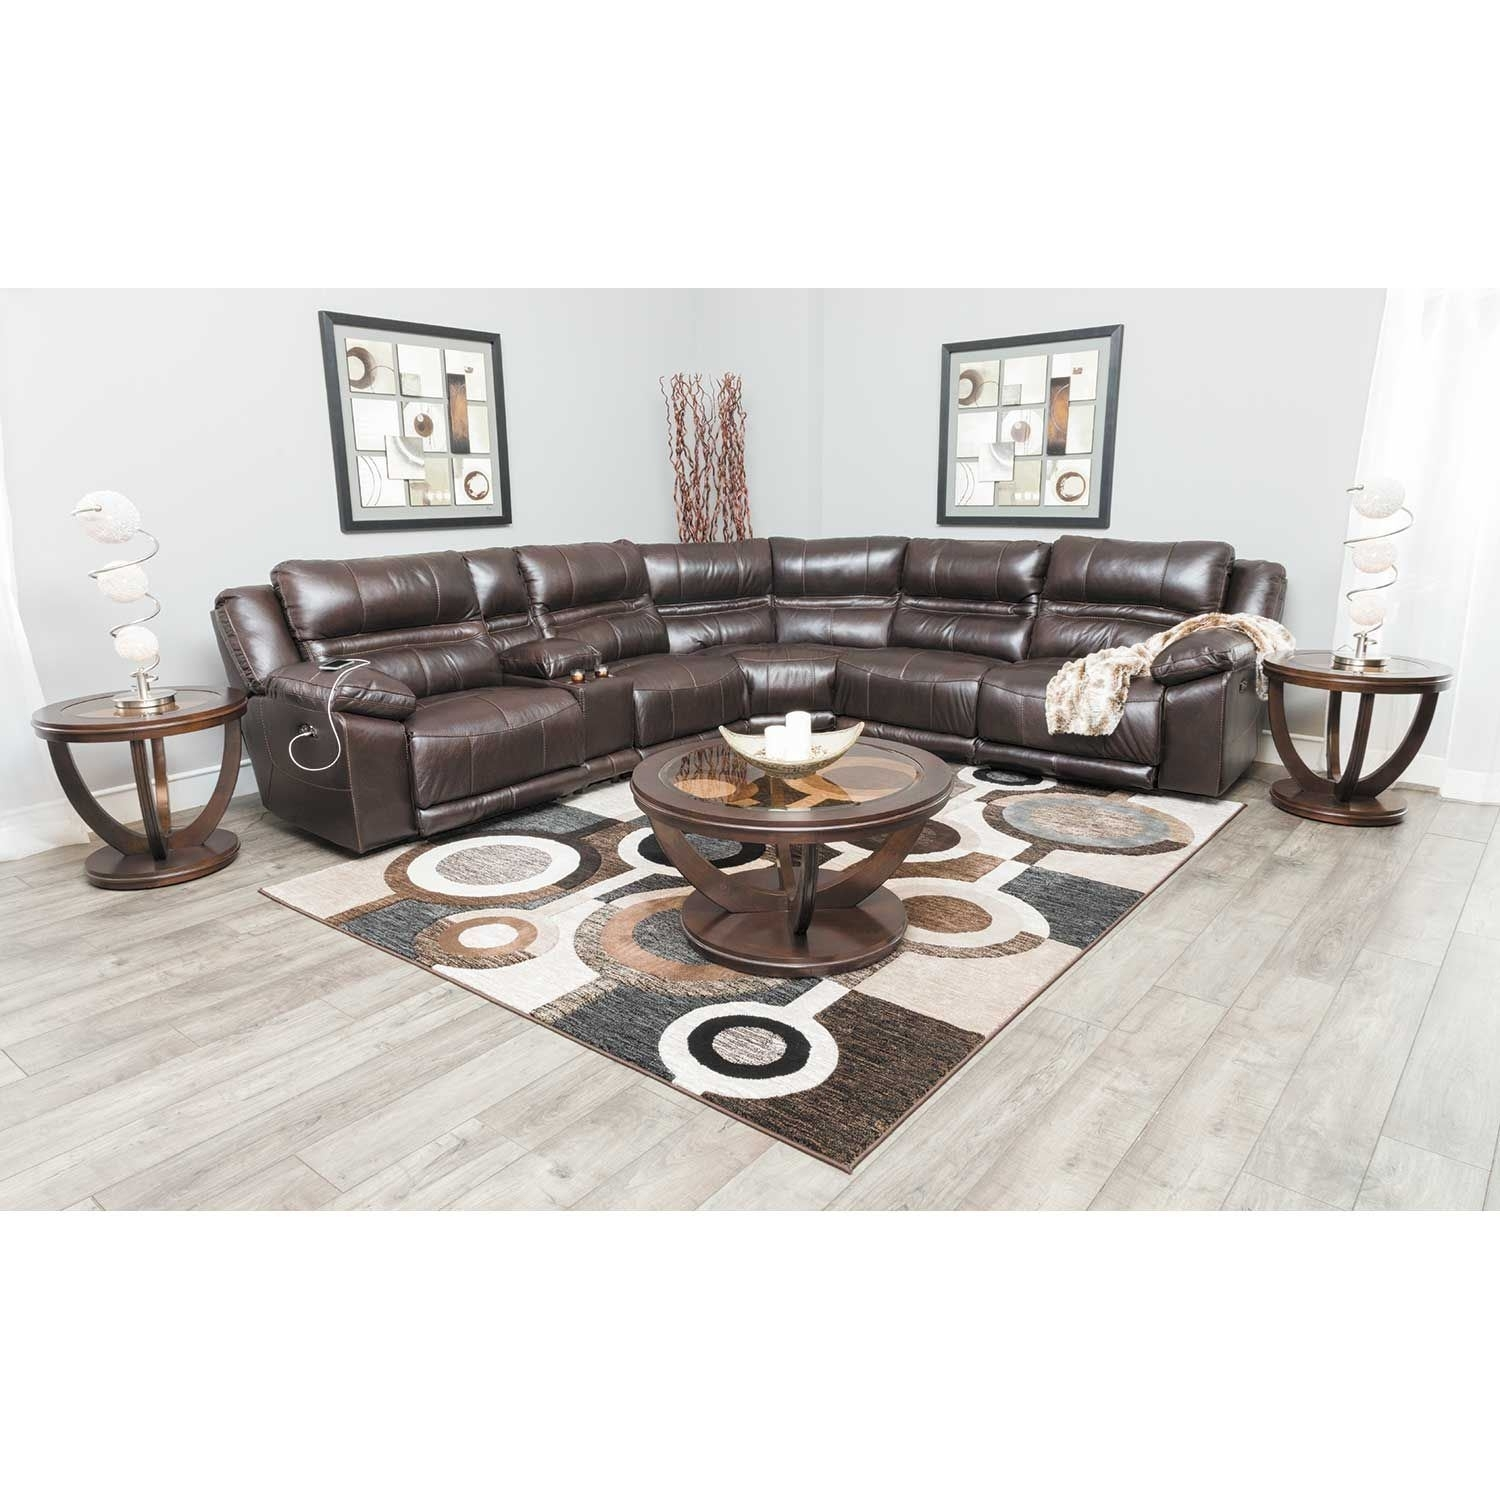 Bergamo 6 Piece Power Reclining Sectional W/adjustable Headrest And Pertaining To Jackson 6 Piece Power Reclining Sectionals (View 14 of 25)